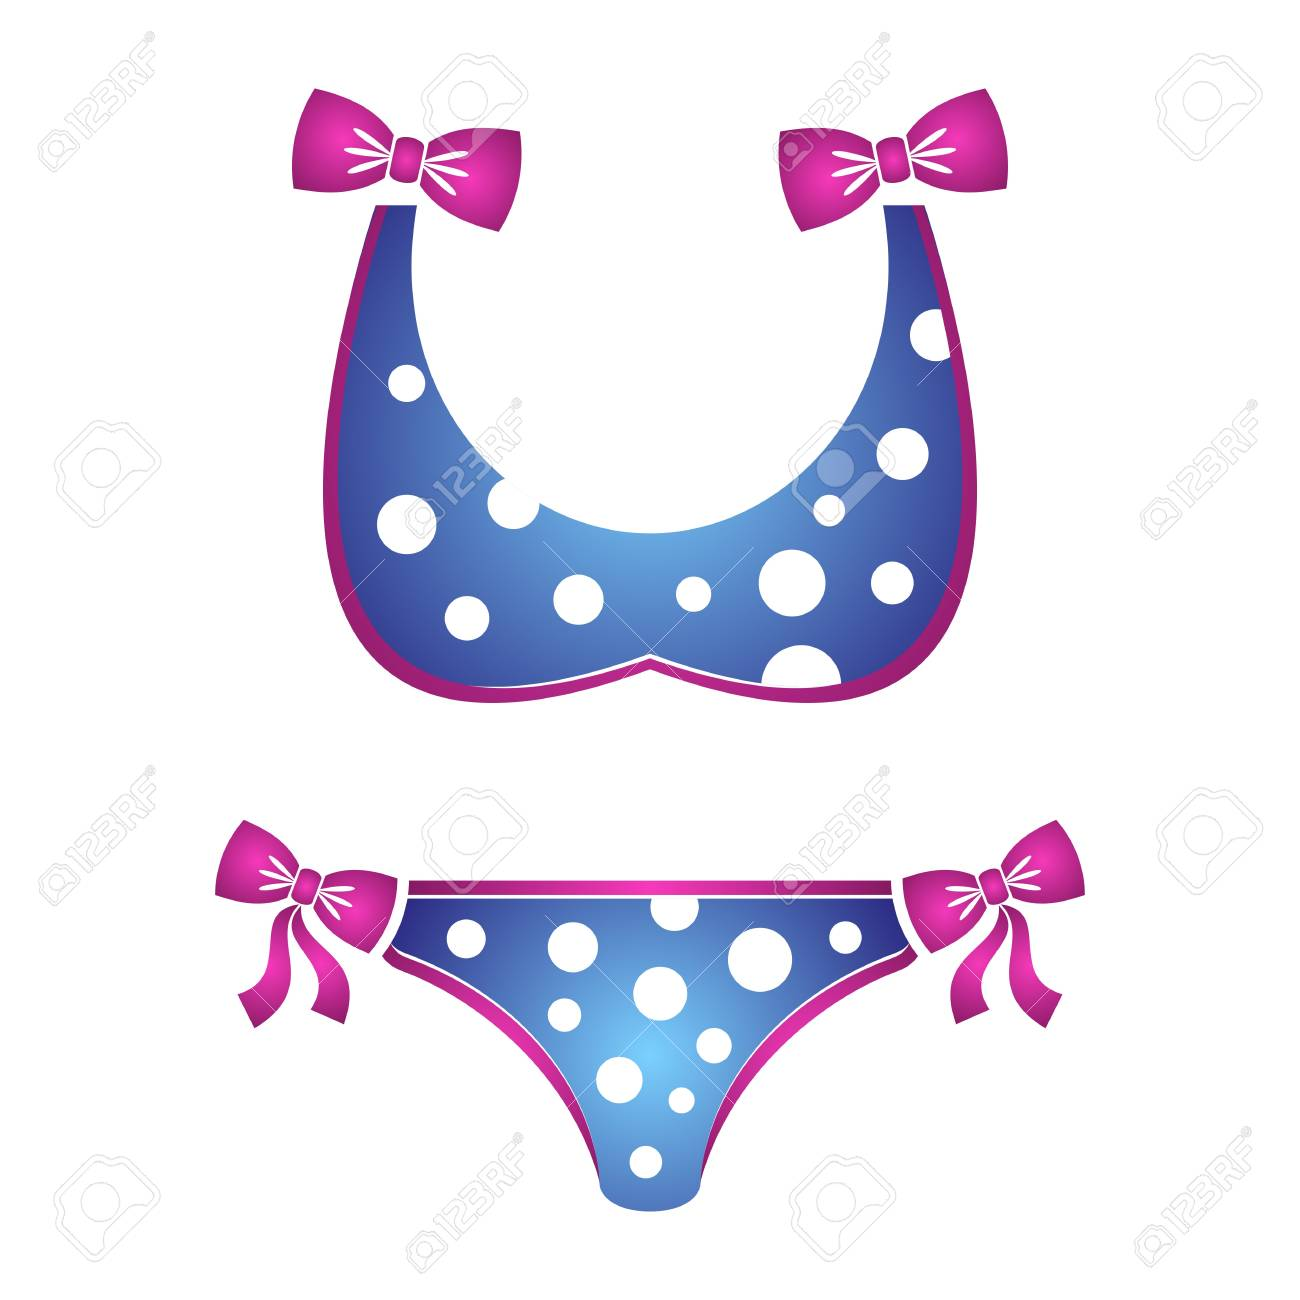 fe16cfc2973 illustration of dotted blue bikini swimsuit isolated Stock Vector - 28400153